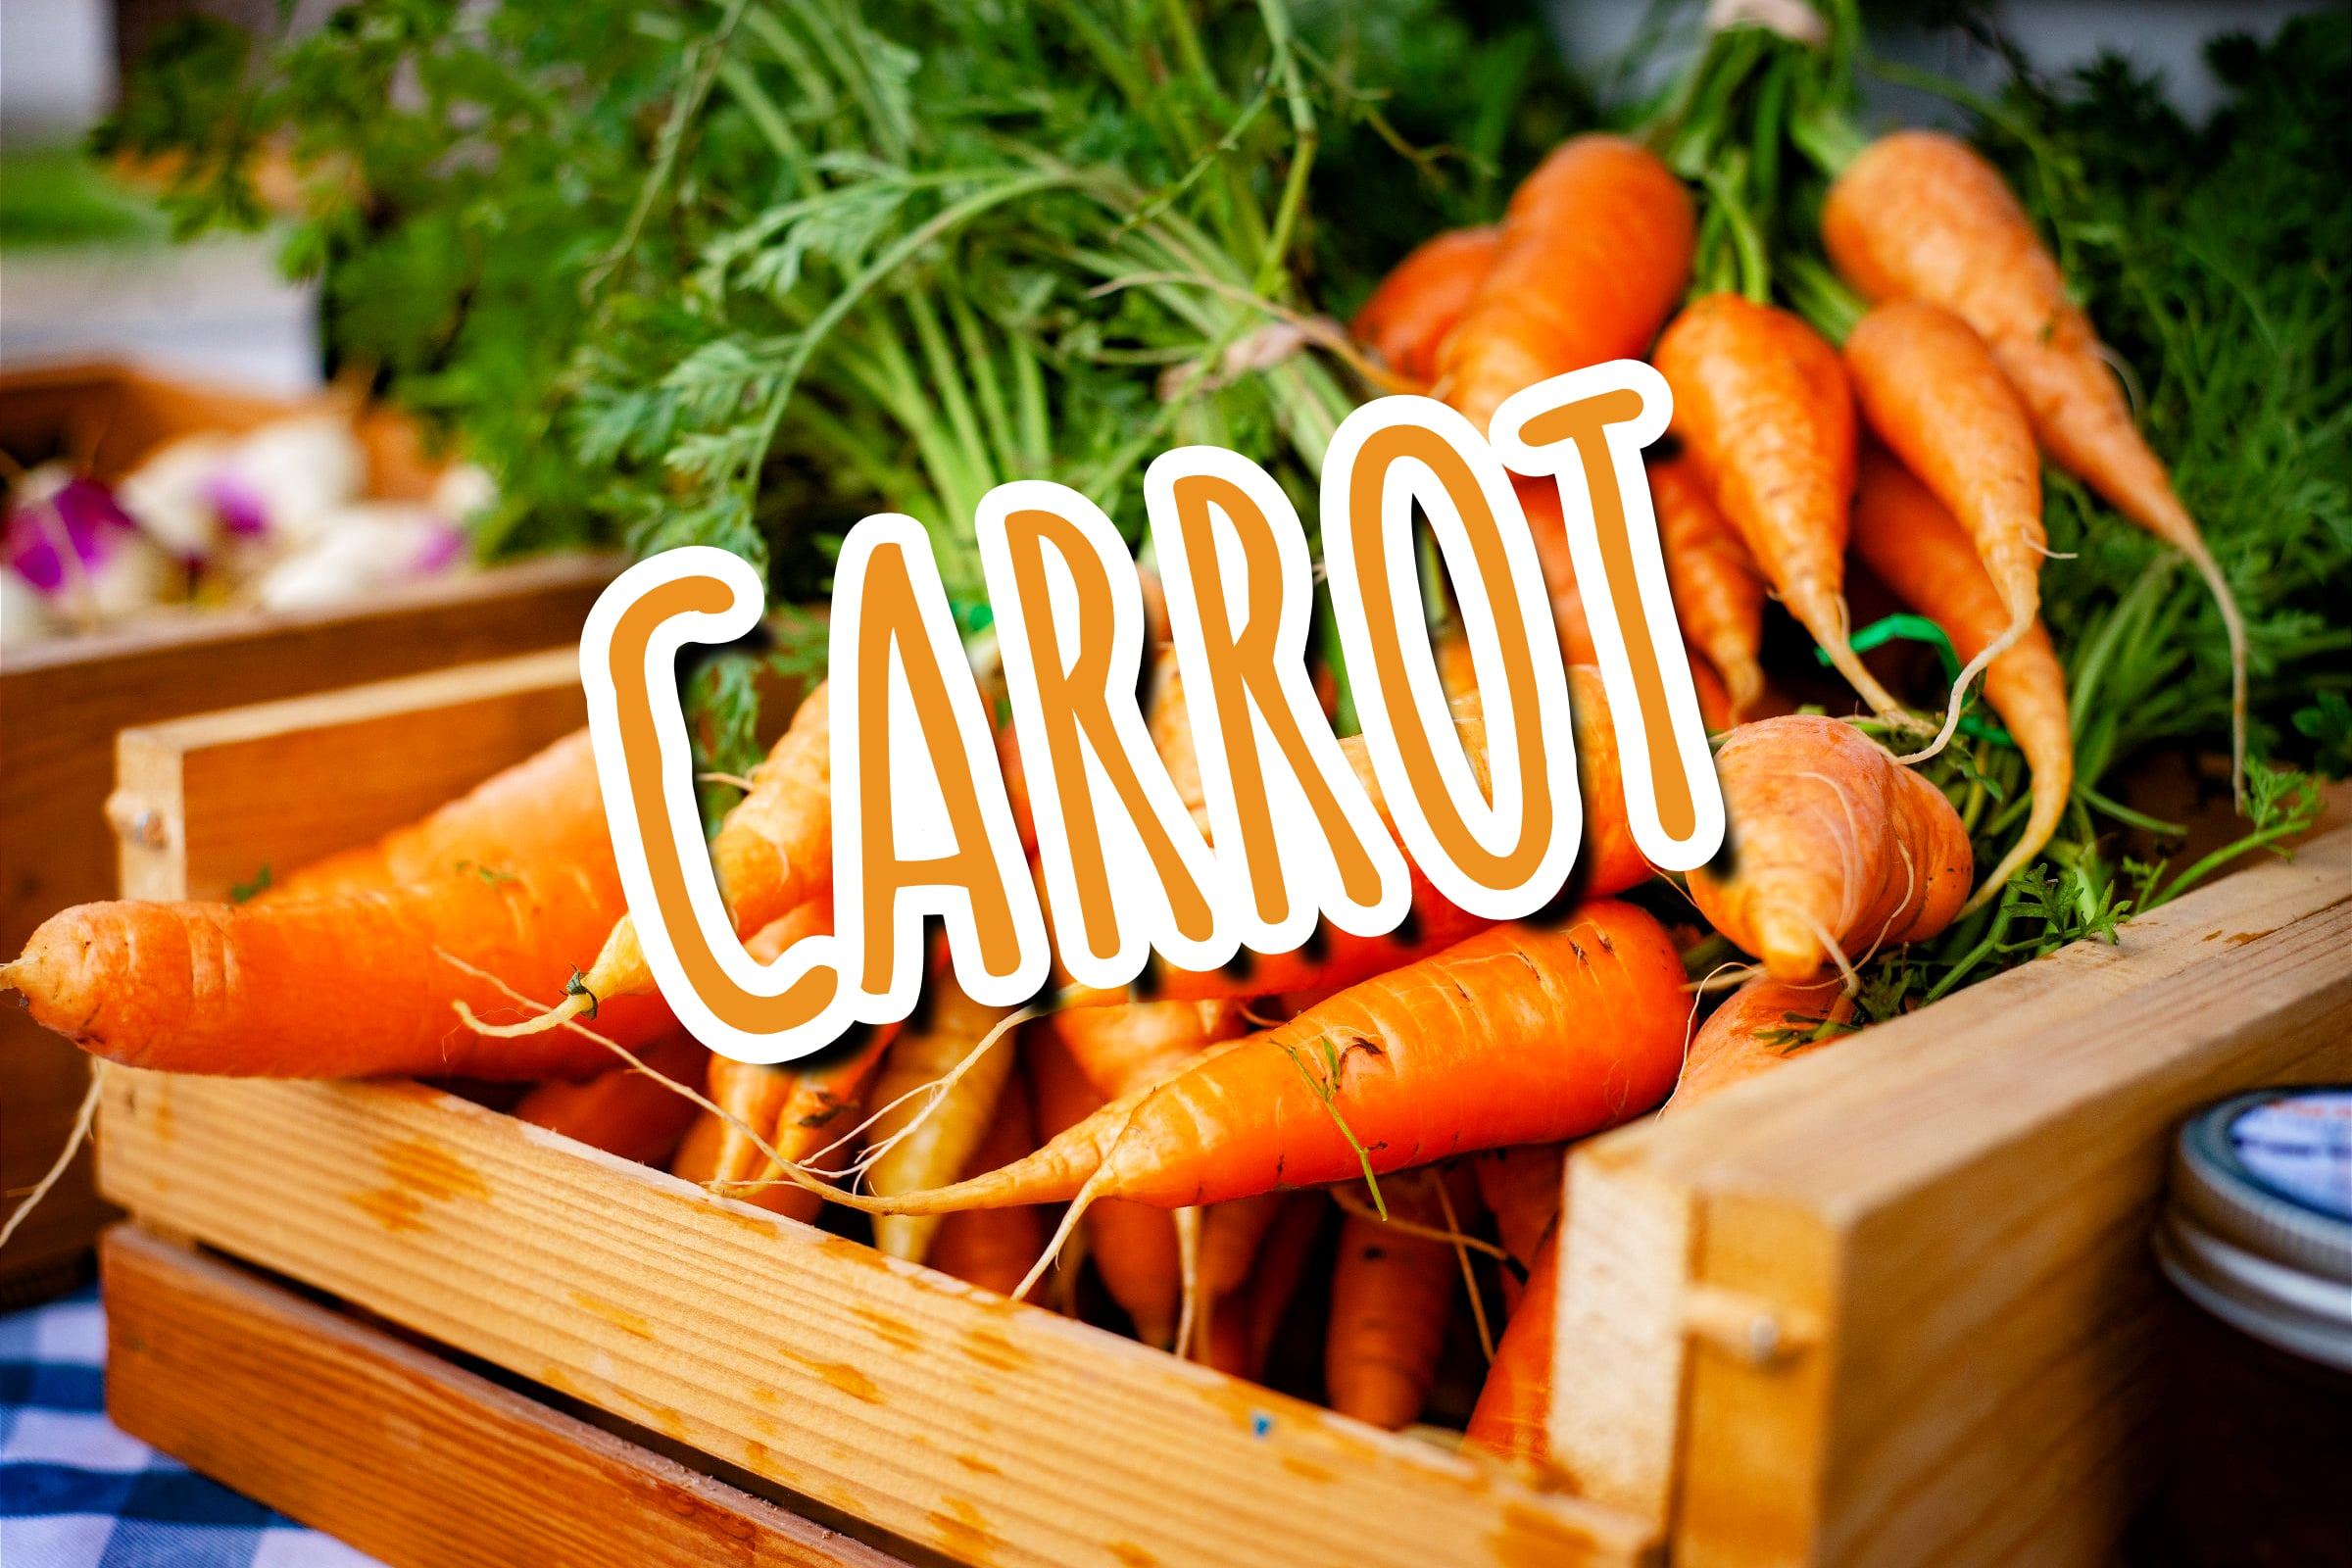 What Is The Carrot Plant?